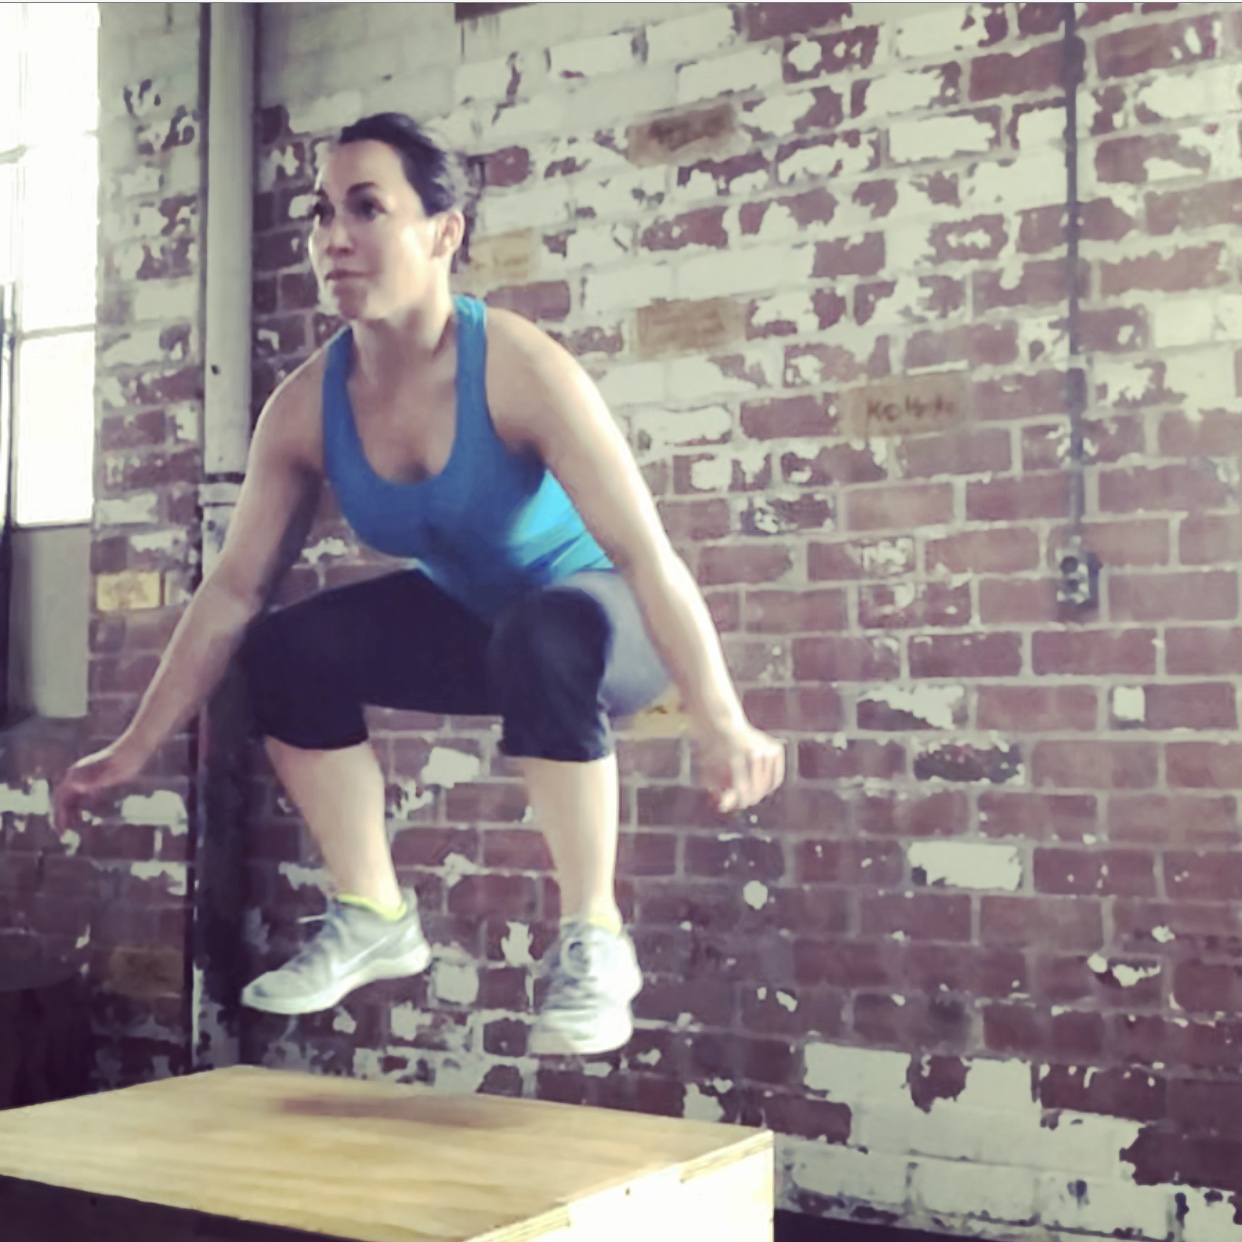 NATHALIE QUAN - How long have you been a member of Sequoia CrossFit?I started in May 2018 when I signed up for the 6 week challenge.Had you done CrossFit before joining? If so, for how long?I had never done Crossfit before signing up. In fact, I really didn't know much about Crossfit and didn't realize I had signed up for CrossFit at the time!What inspired you to join Sequoia CrossFit?It started when I joined with the 6 week challenge and ended up really enjoying it. Matt has been a great coach and always pushes people to their full potential while keeping the environment fun and comfortable so after the 6 weeks were up, I decided to continue my membership.What is your favorite WOD and why?I like Hero WODs. They're intense, most of the time you feeling like dying while doing it but there's a level of satisfaction when it's all said and done. I'm weird, I know!What is your favorite movement and why?Deadlifts and squats, duh!What is your favorite indulgence (type of food, drink, or....you know)?Ummm, wine, cheese and pasta...oh and chips! I wish I could eat pasta and drink wine everyday. Le sigh.